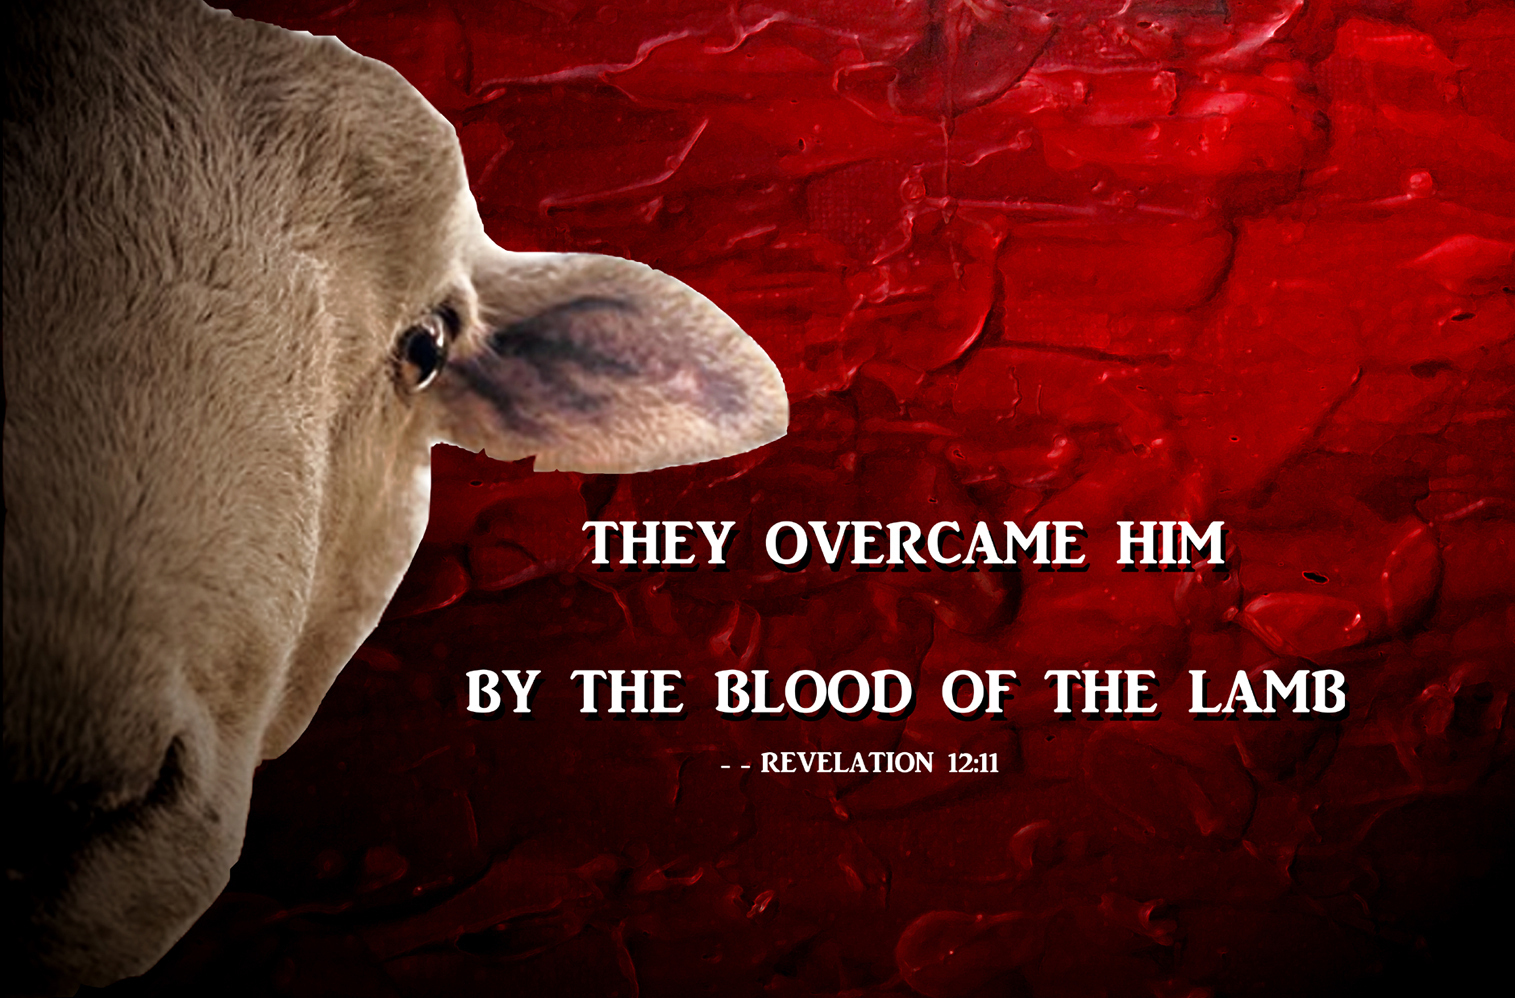 lamb with verse about blood of the lamb